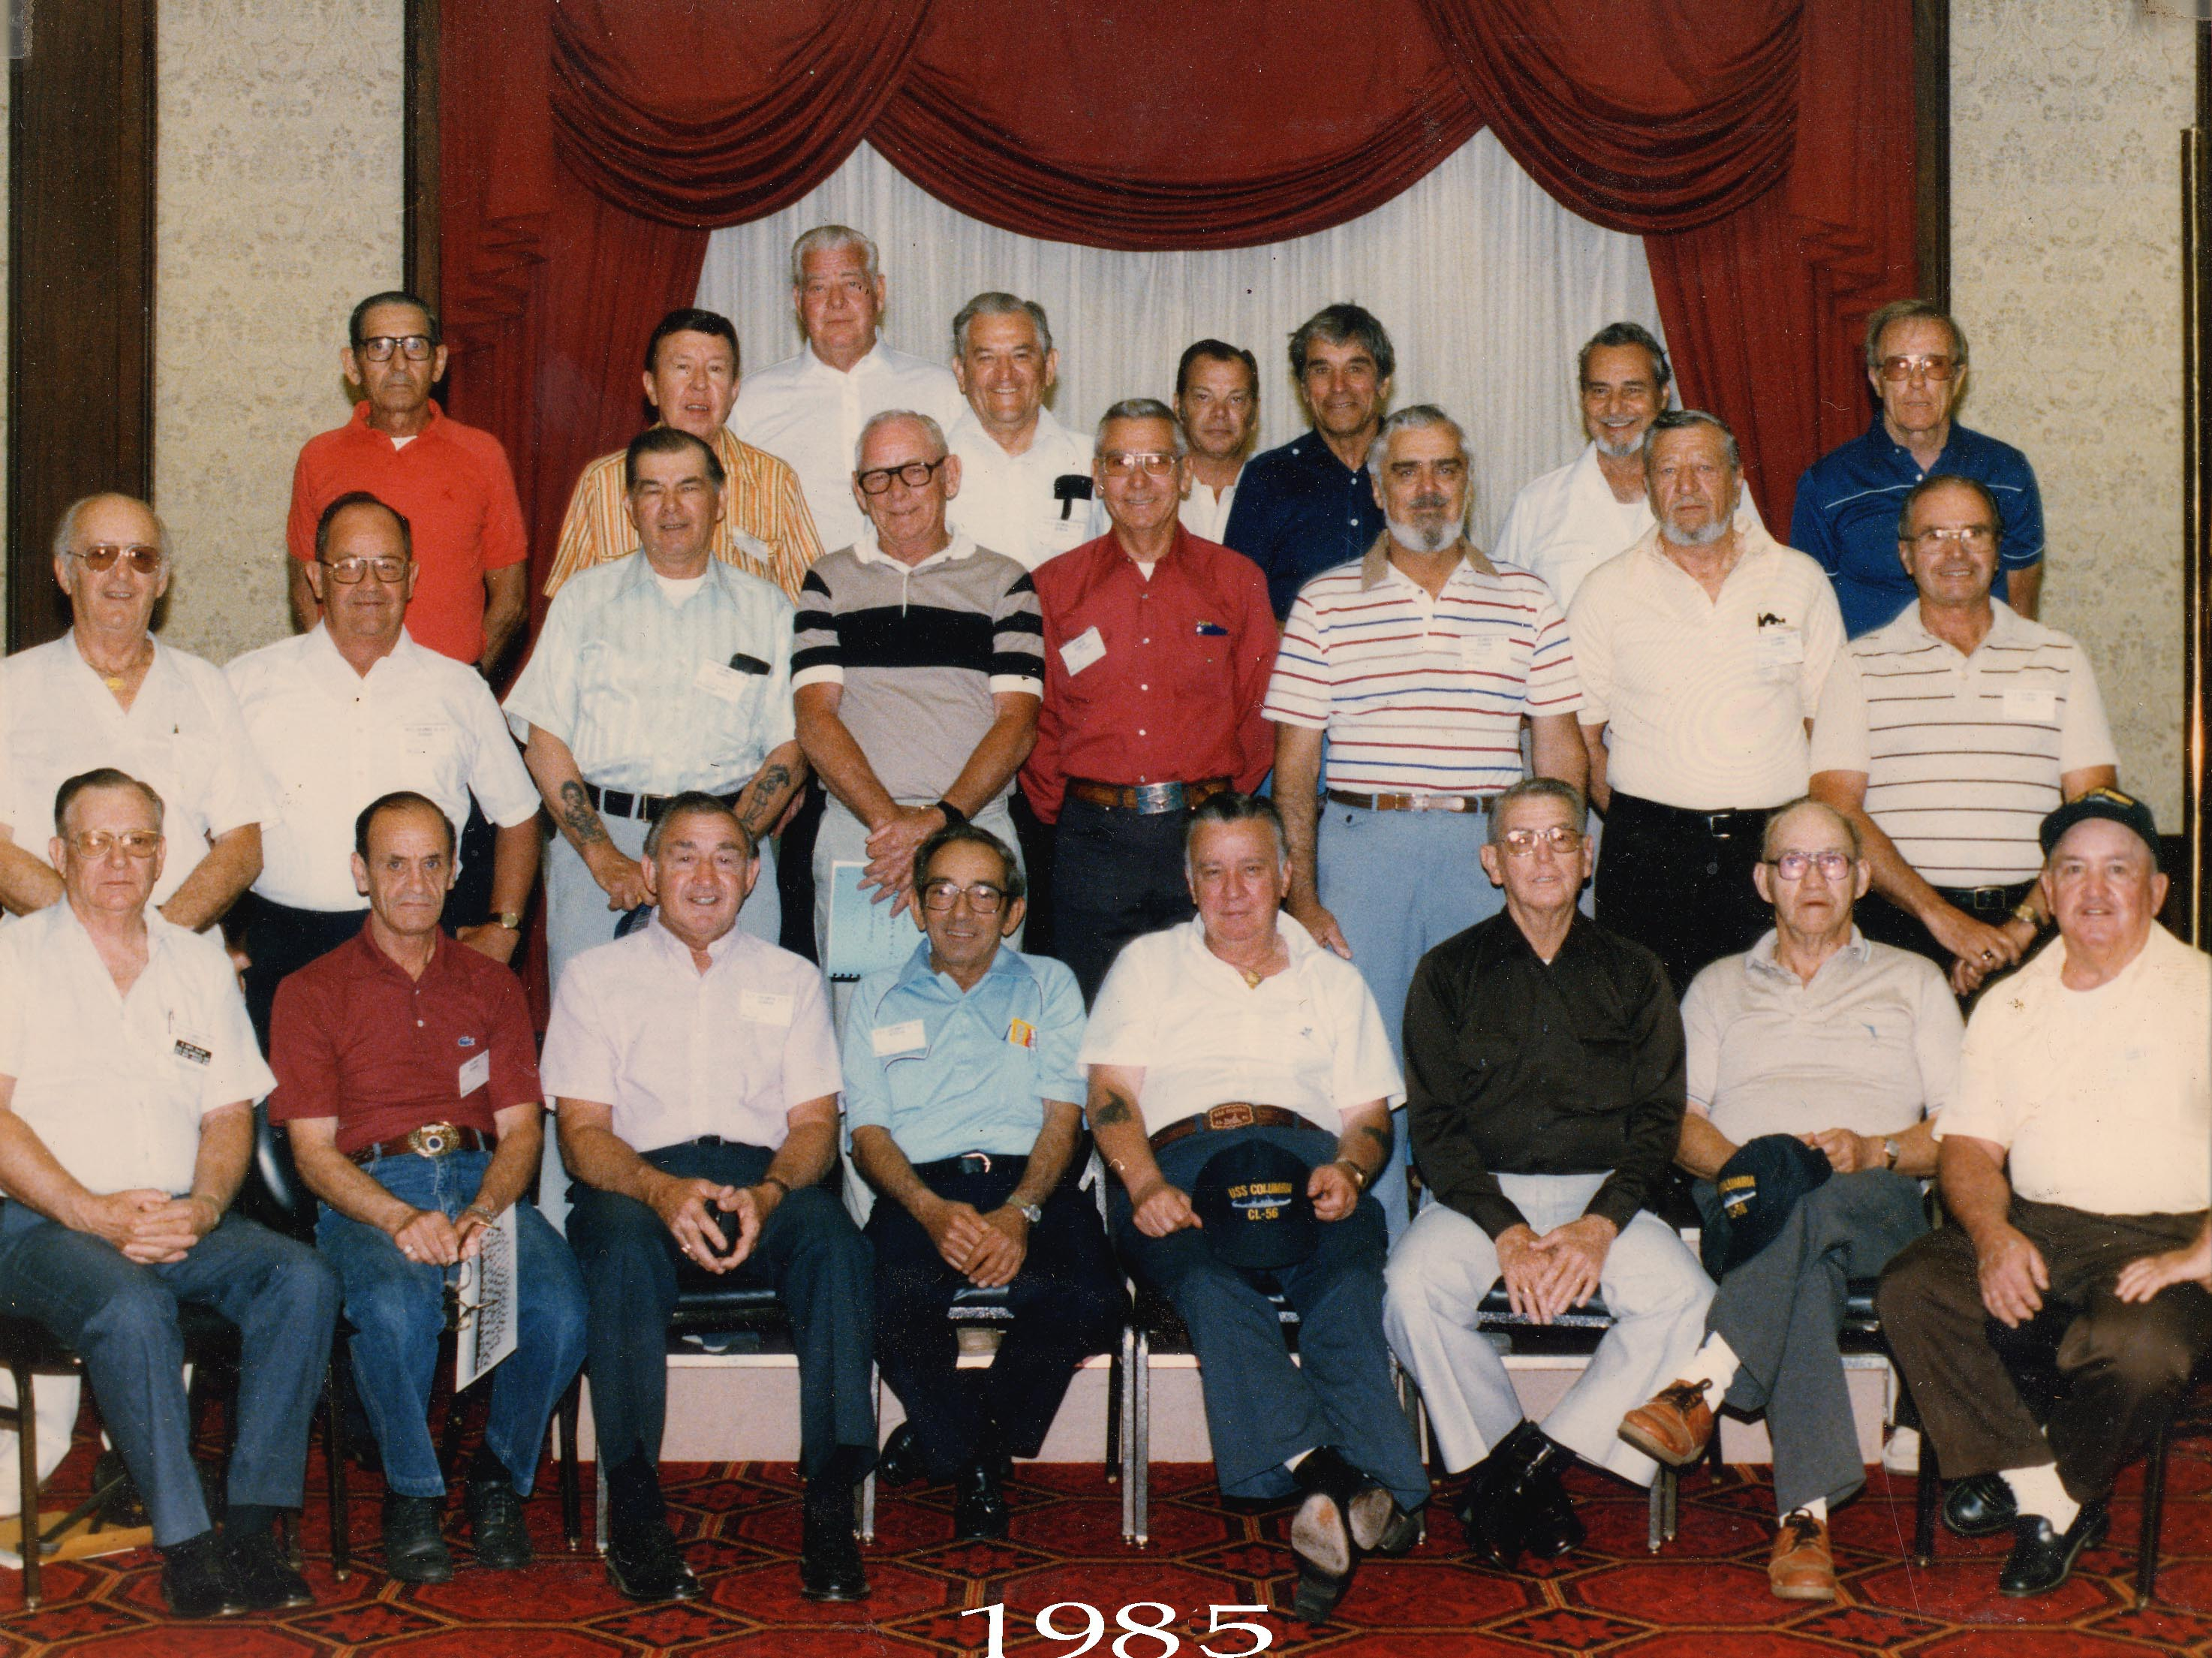 1985 St. Louis reunion picture